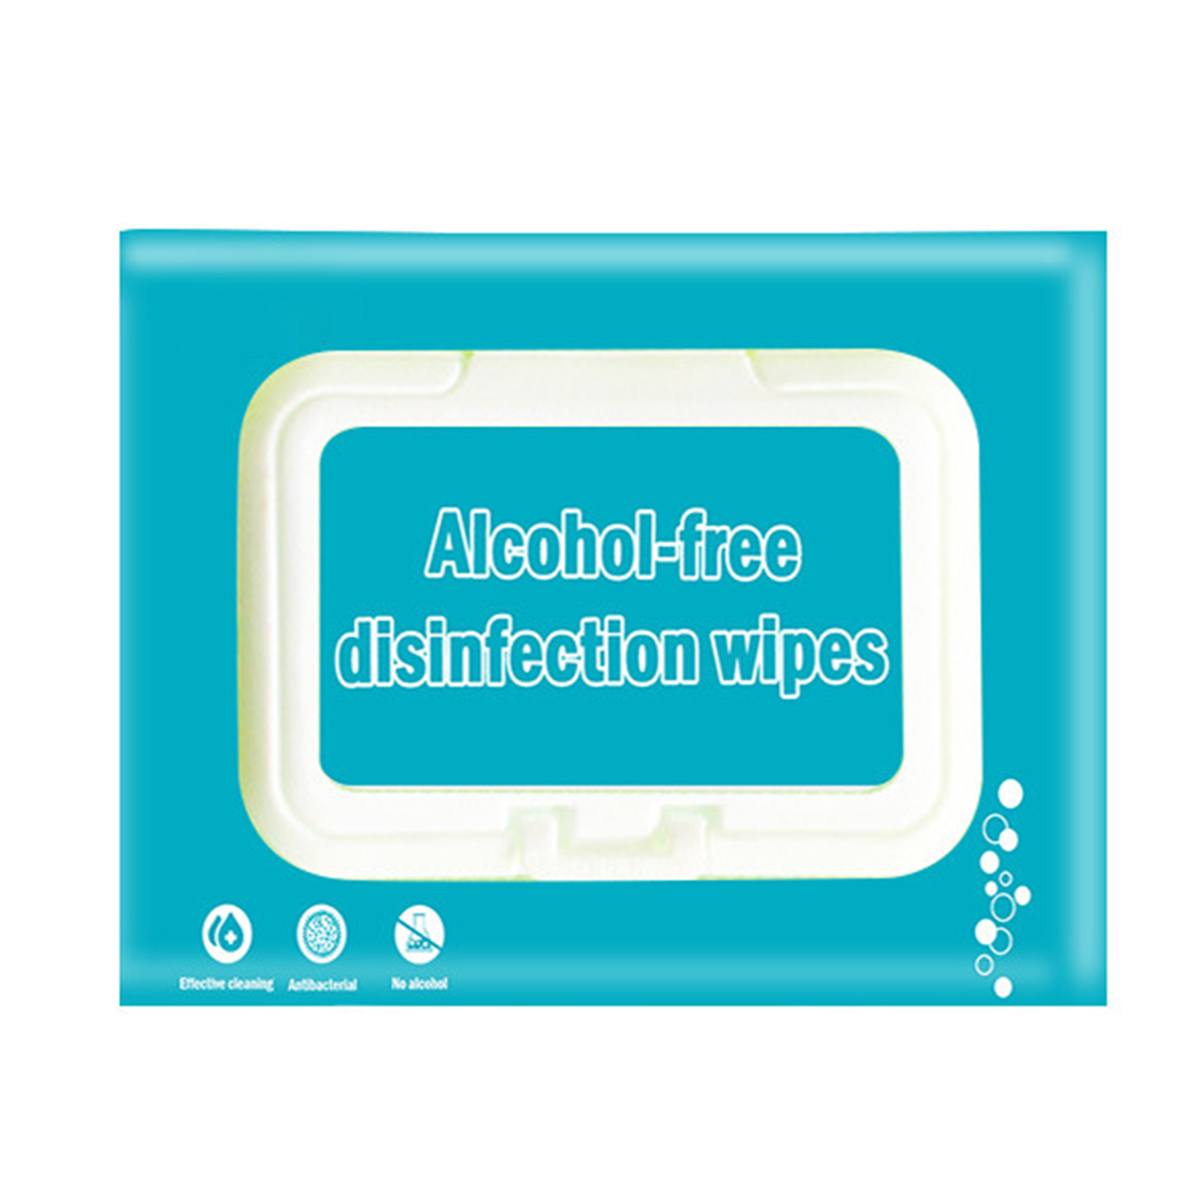 80 Wipes / Pack Wet Wipes Portable Disposable Hand Cleaning Disinfection Wipes Portable Easy To Carry Clean Sterilize Wipes